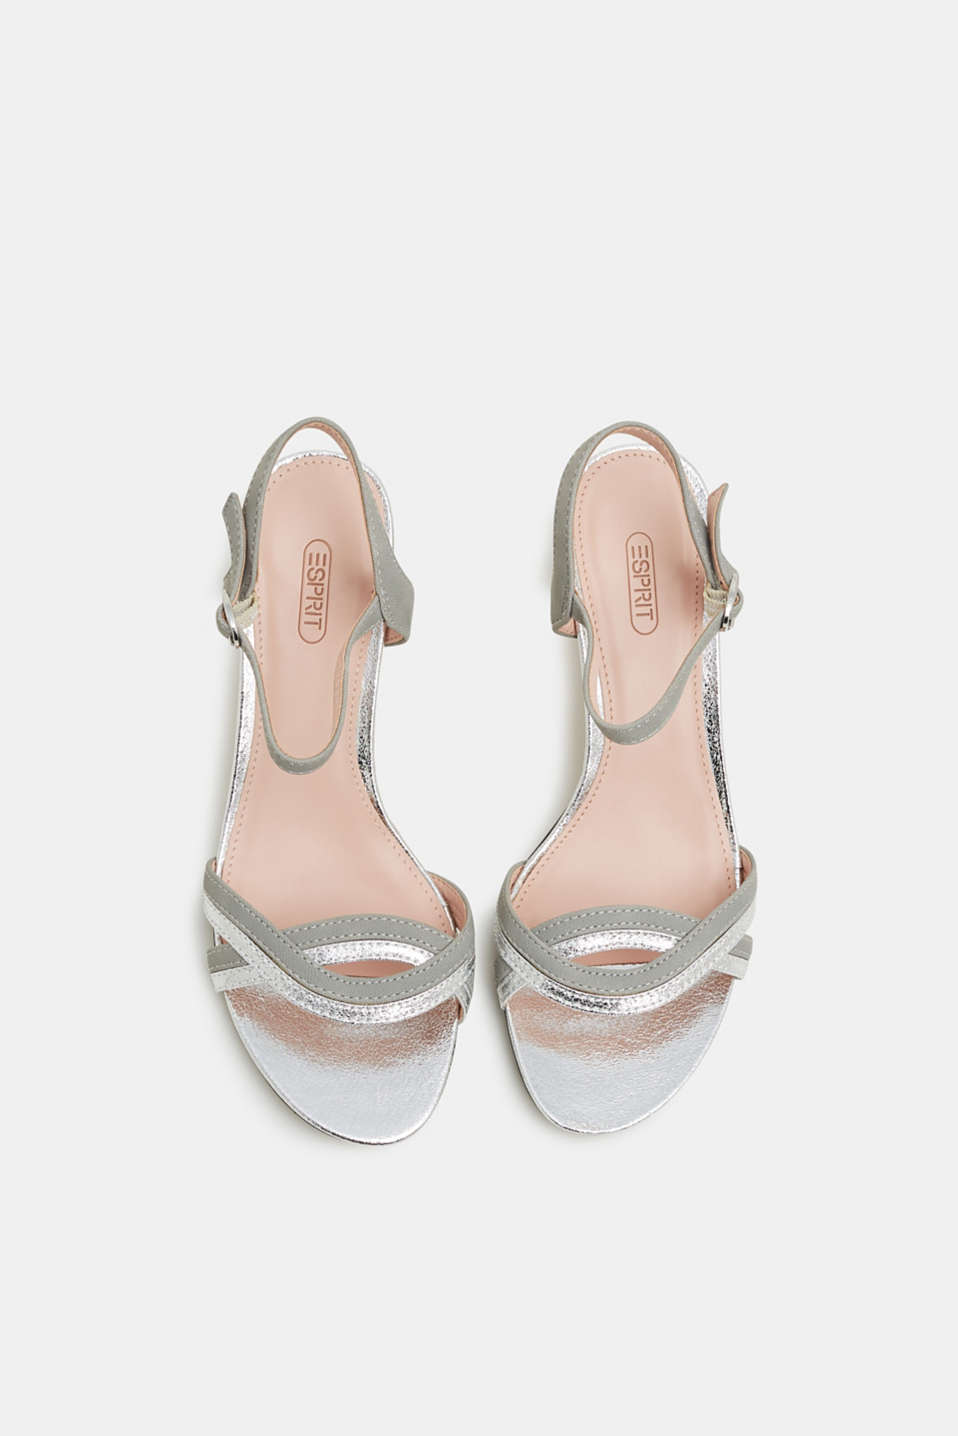 Faux leather sandals with metallic accents, SILVER, detail image number 1